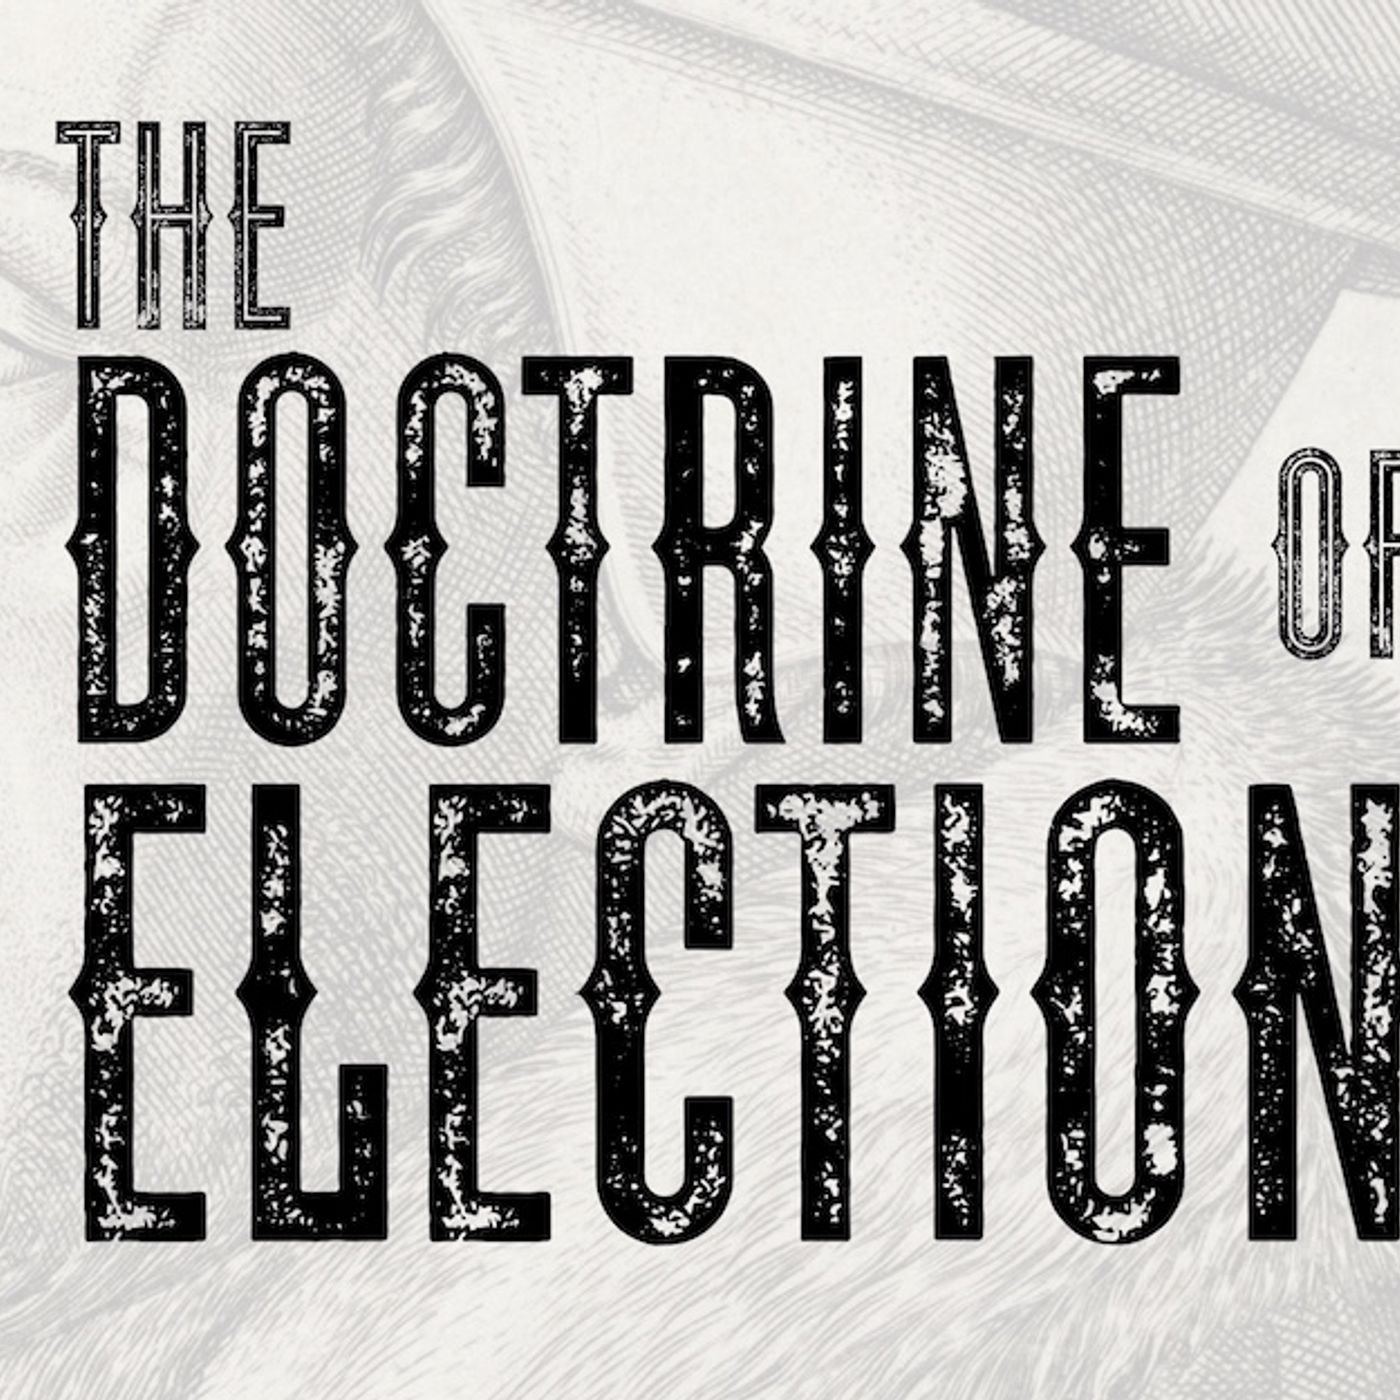 Trying To Change The Doctrine of Election